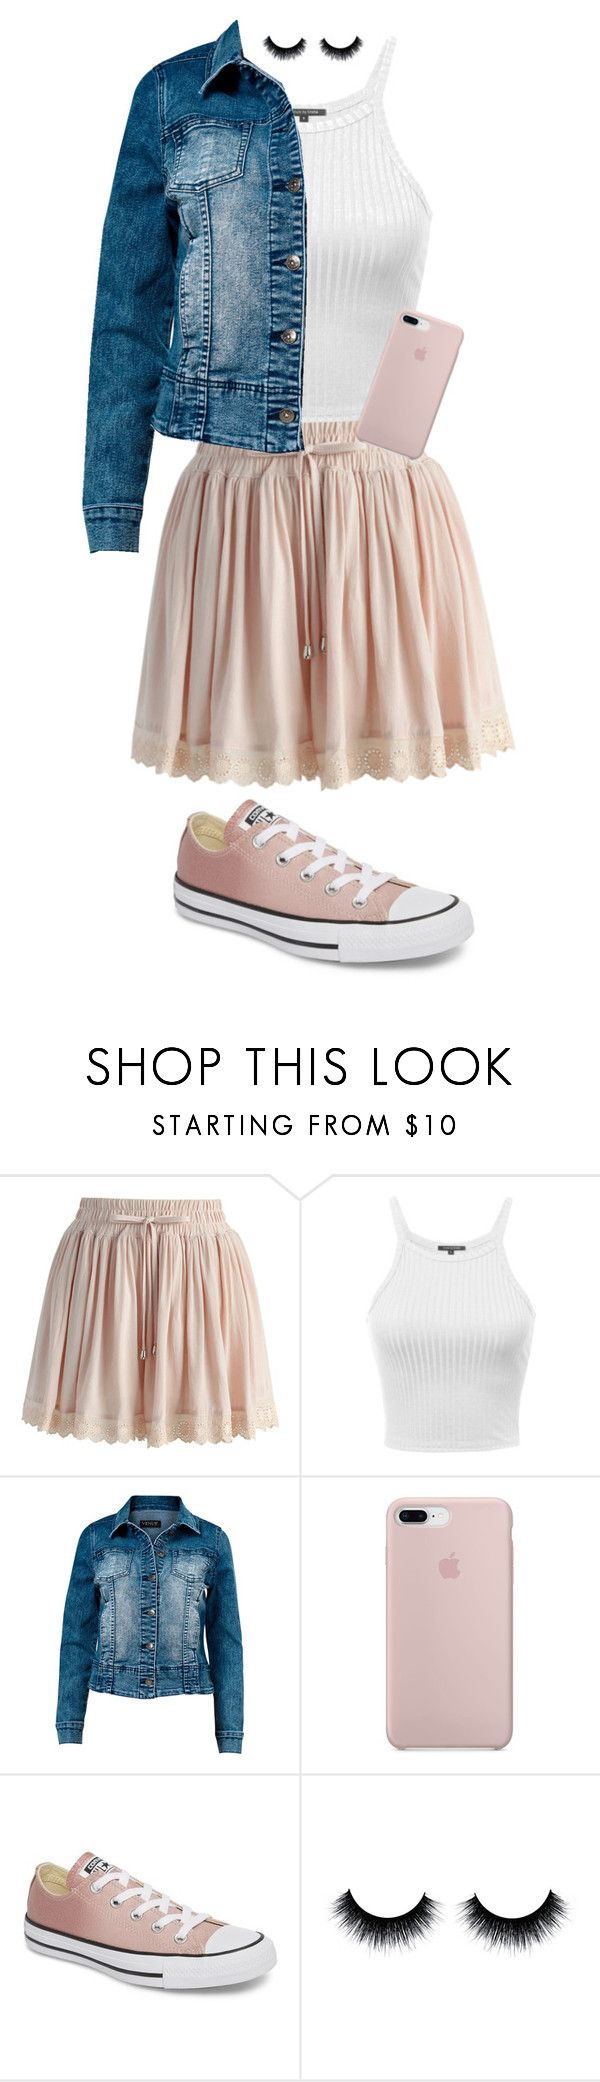 """SPRING!!"" by egforkner ❤ liked on Polyvore featuring Chicwish, Venus, Converse and plus size clothing"